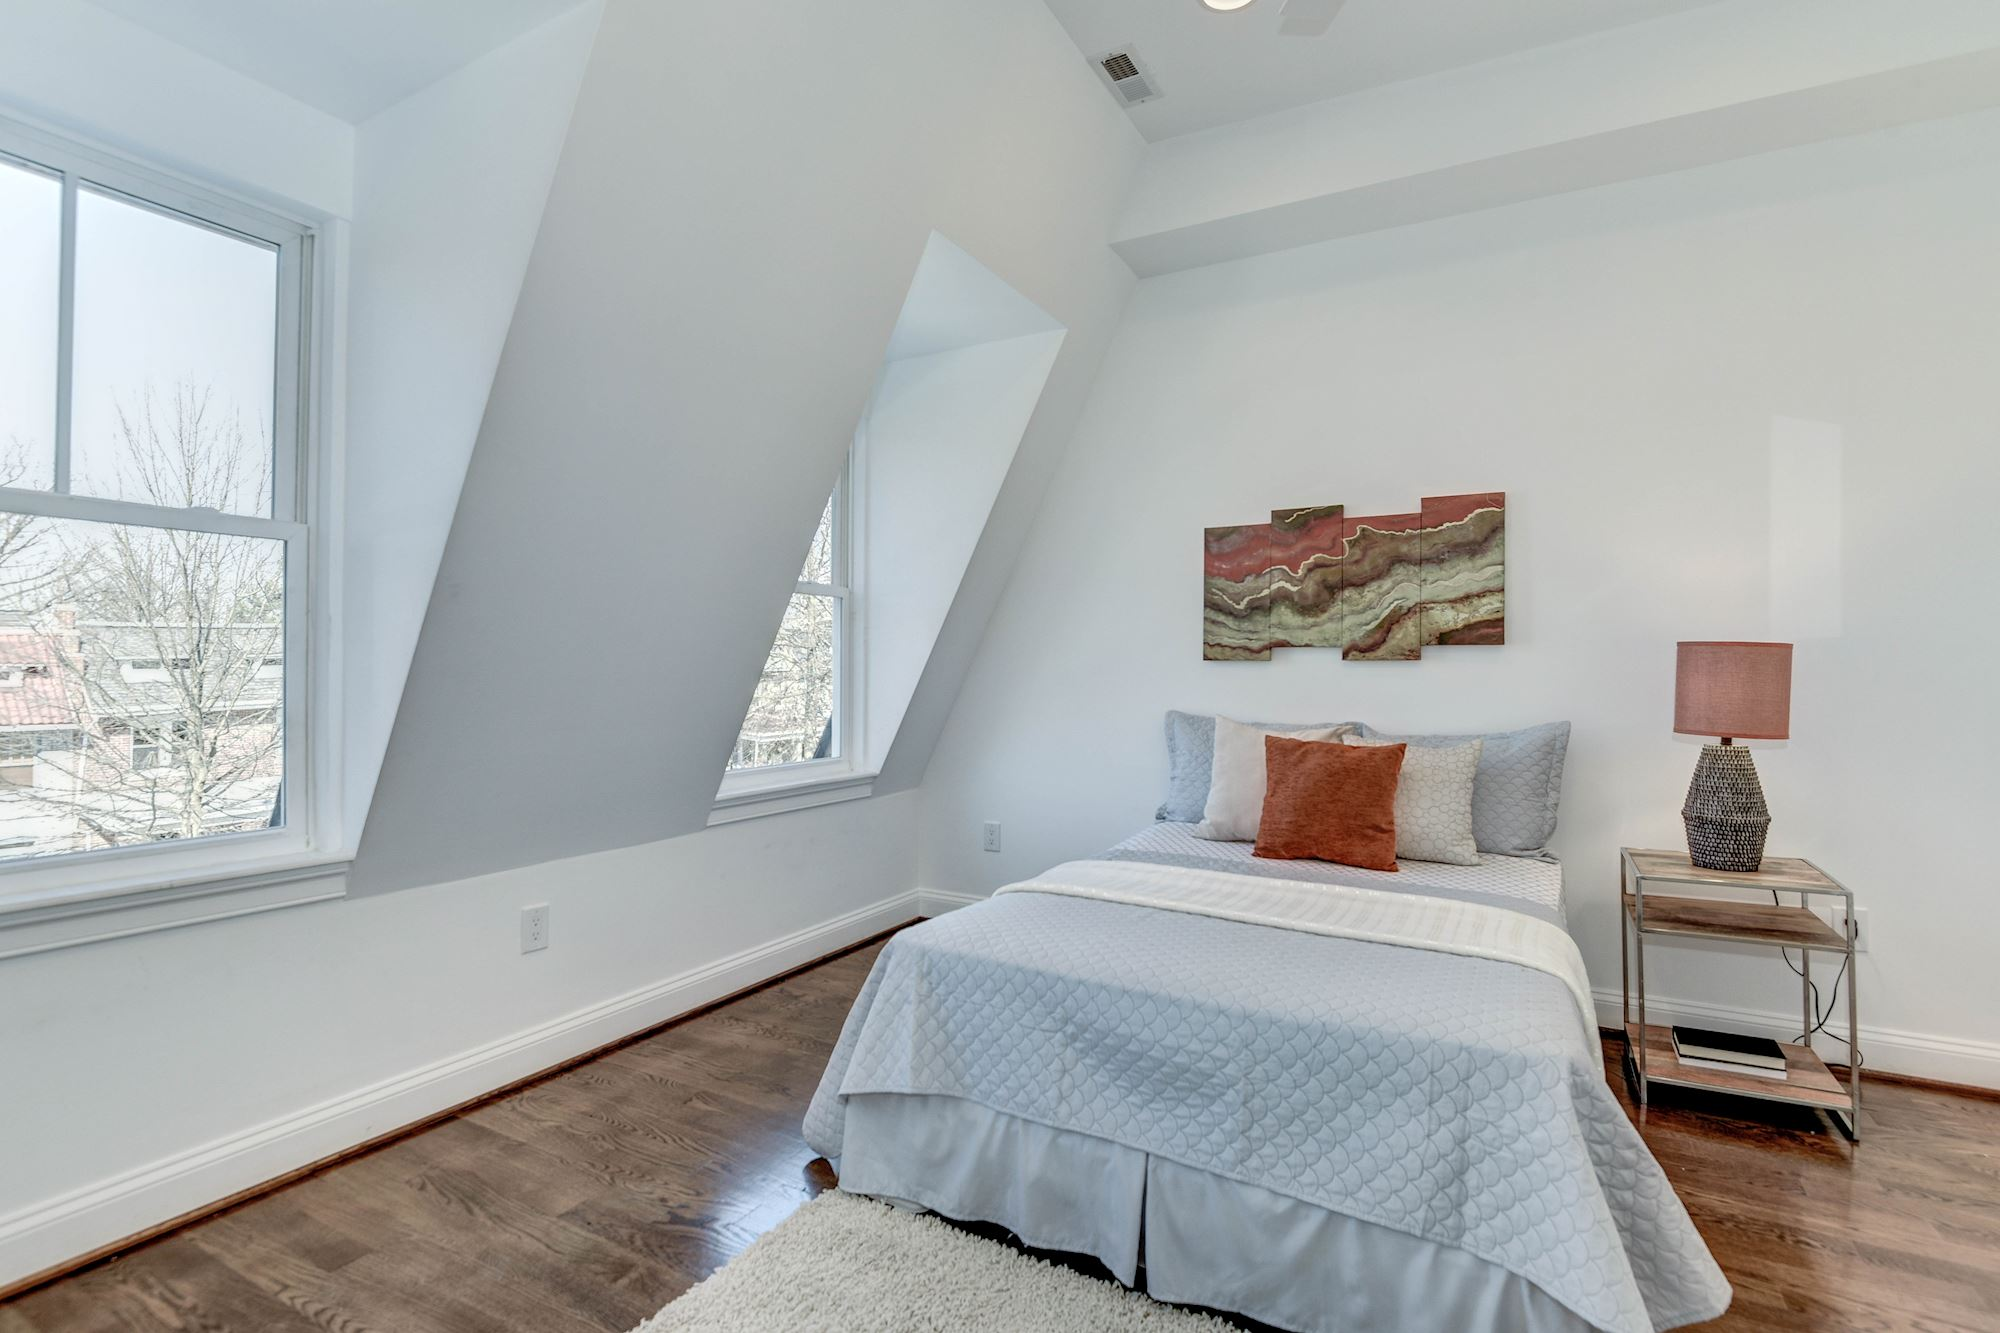 Two bedroom columbia heights unit with programmable heated bathroom - Bright Cheery Character Filled Bedroom